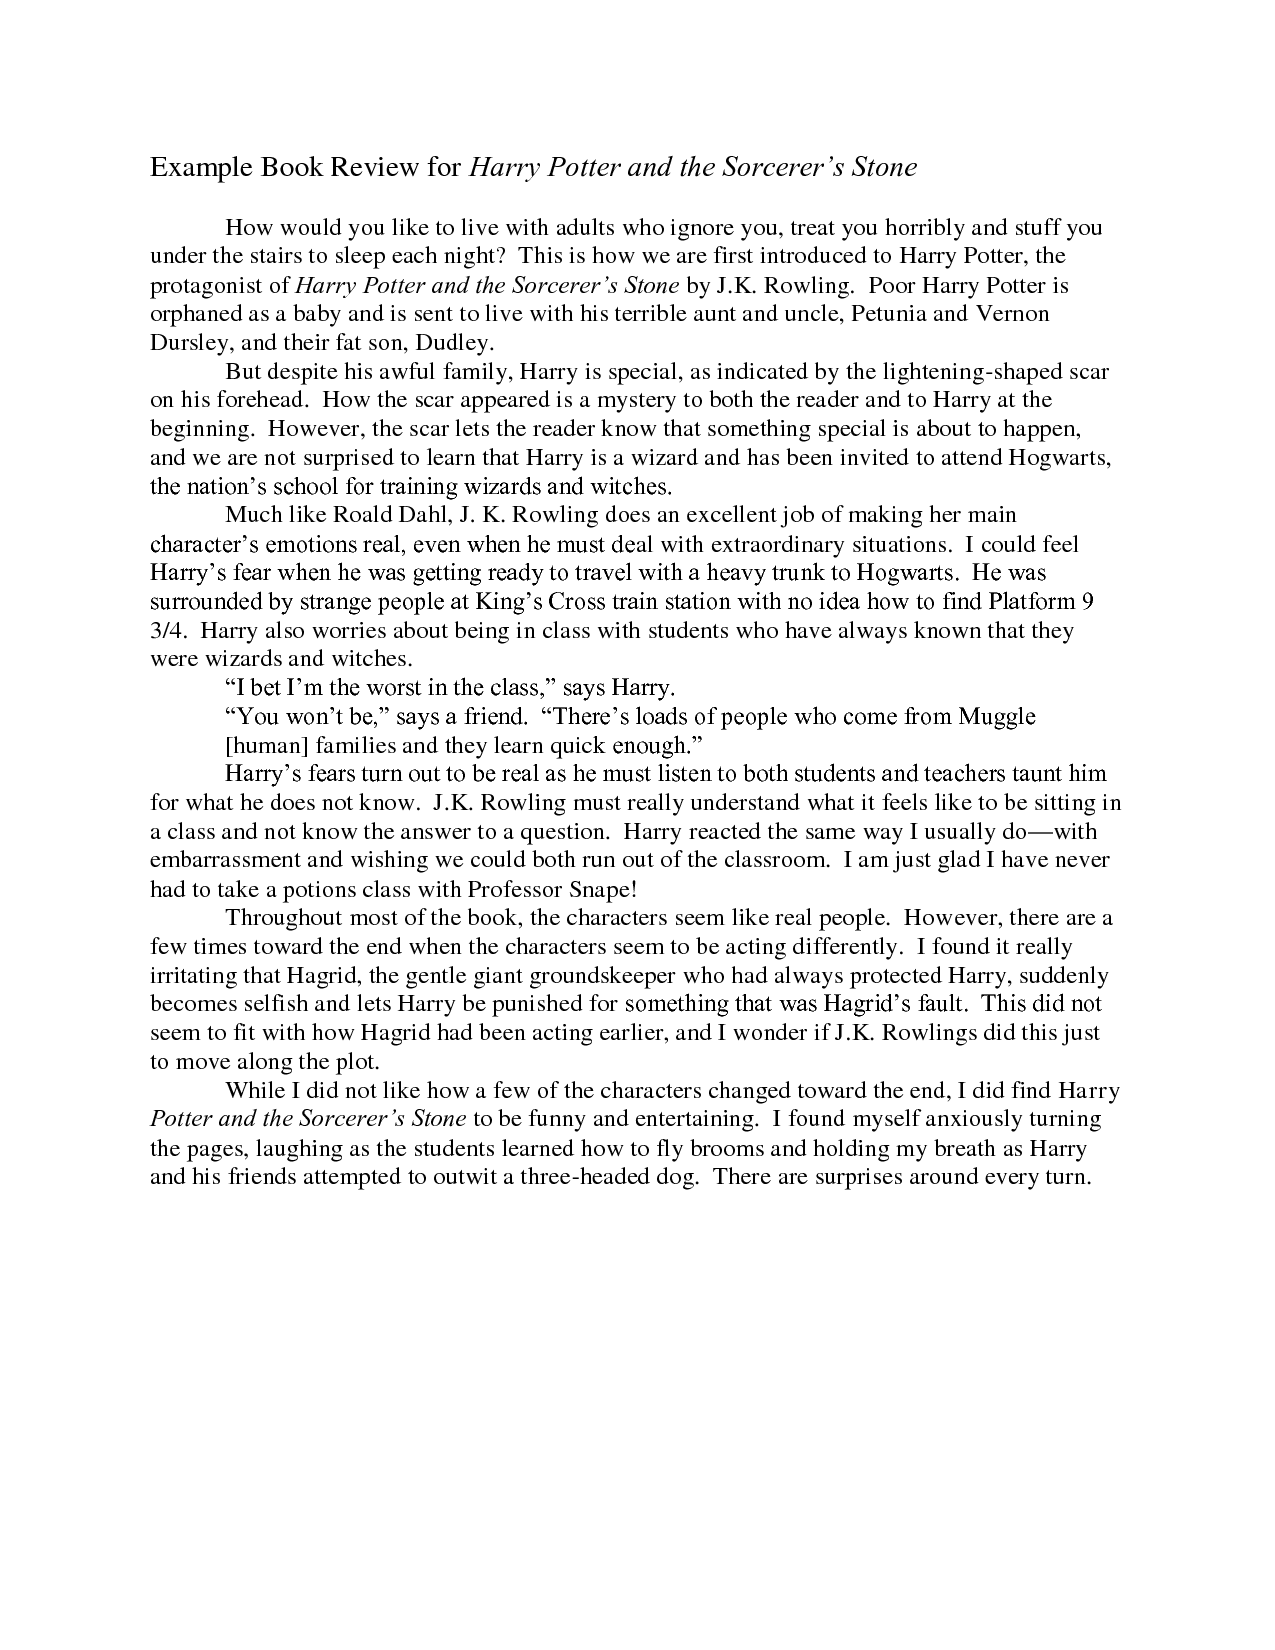 a review of a book A free collection of book reviews published in the new york times since 1981.